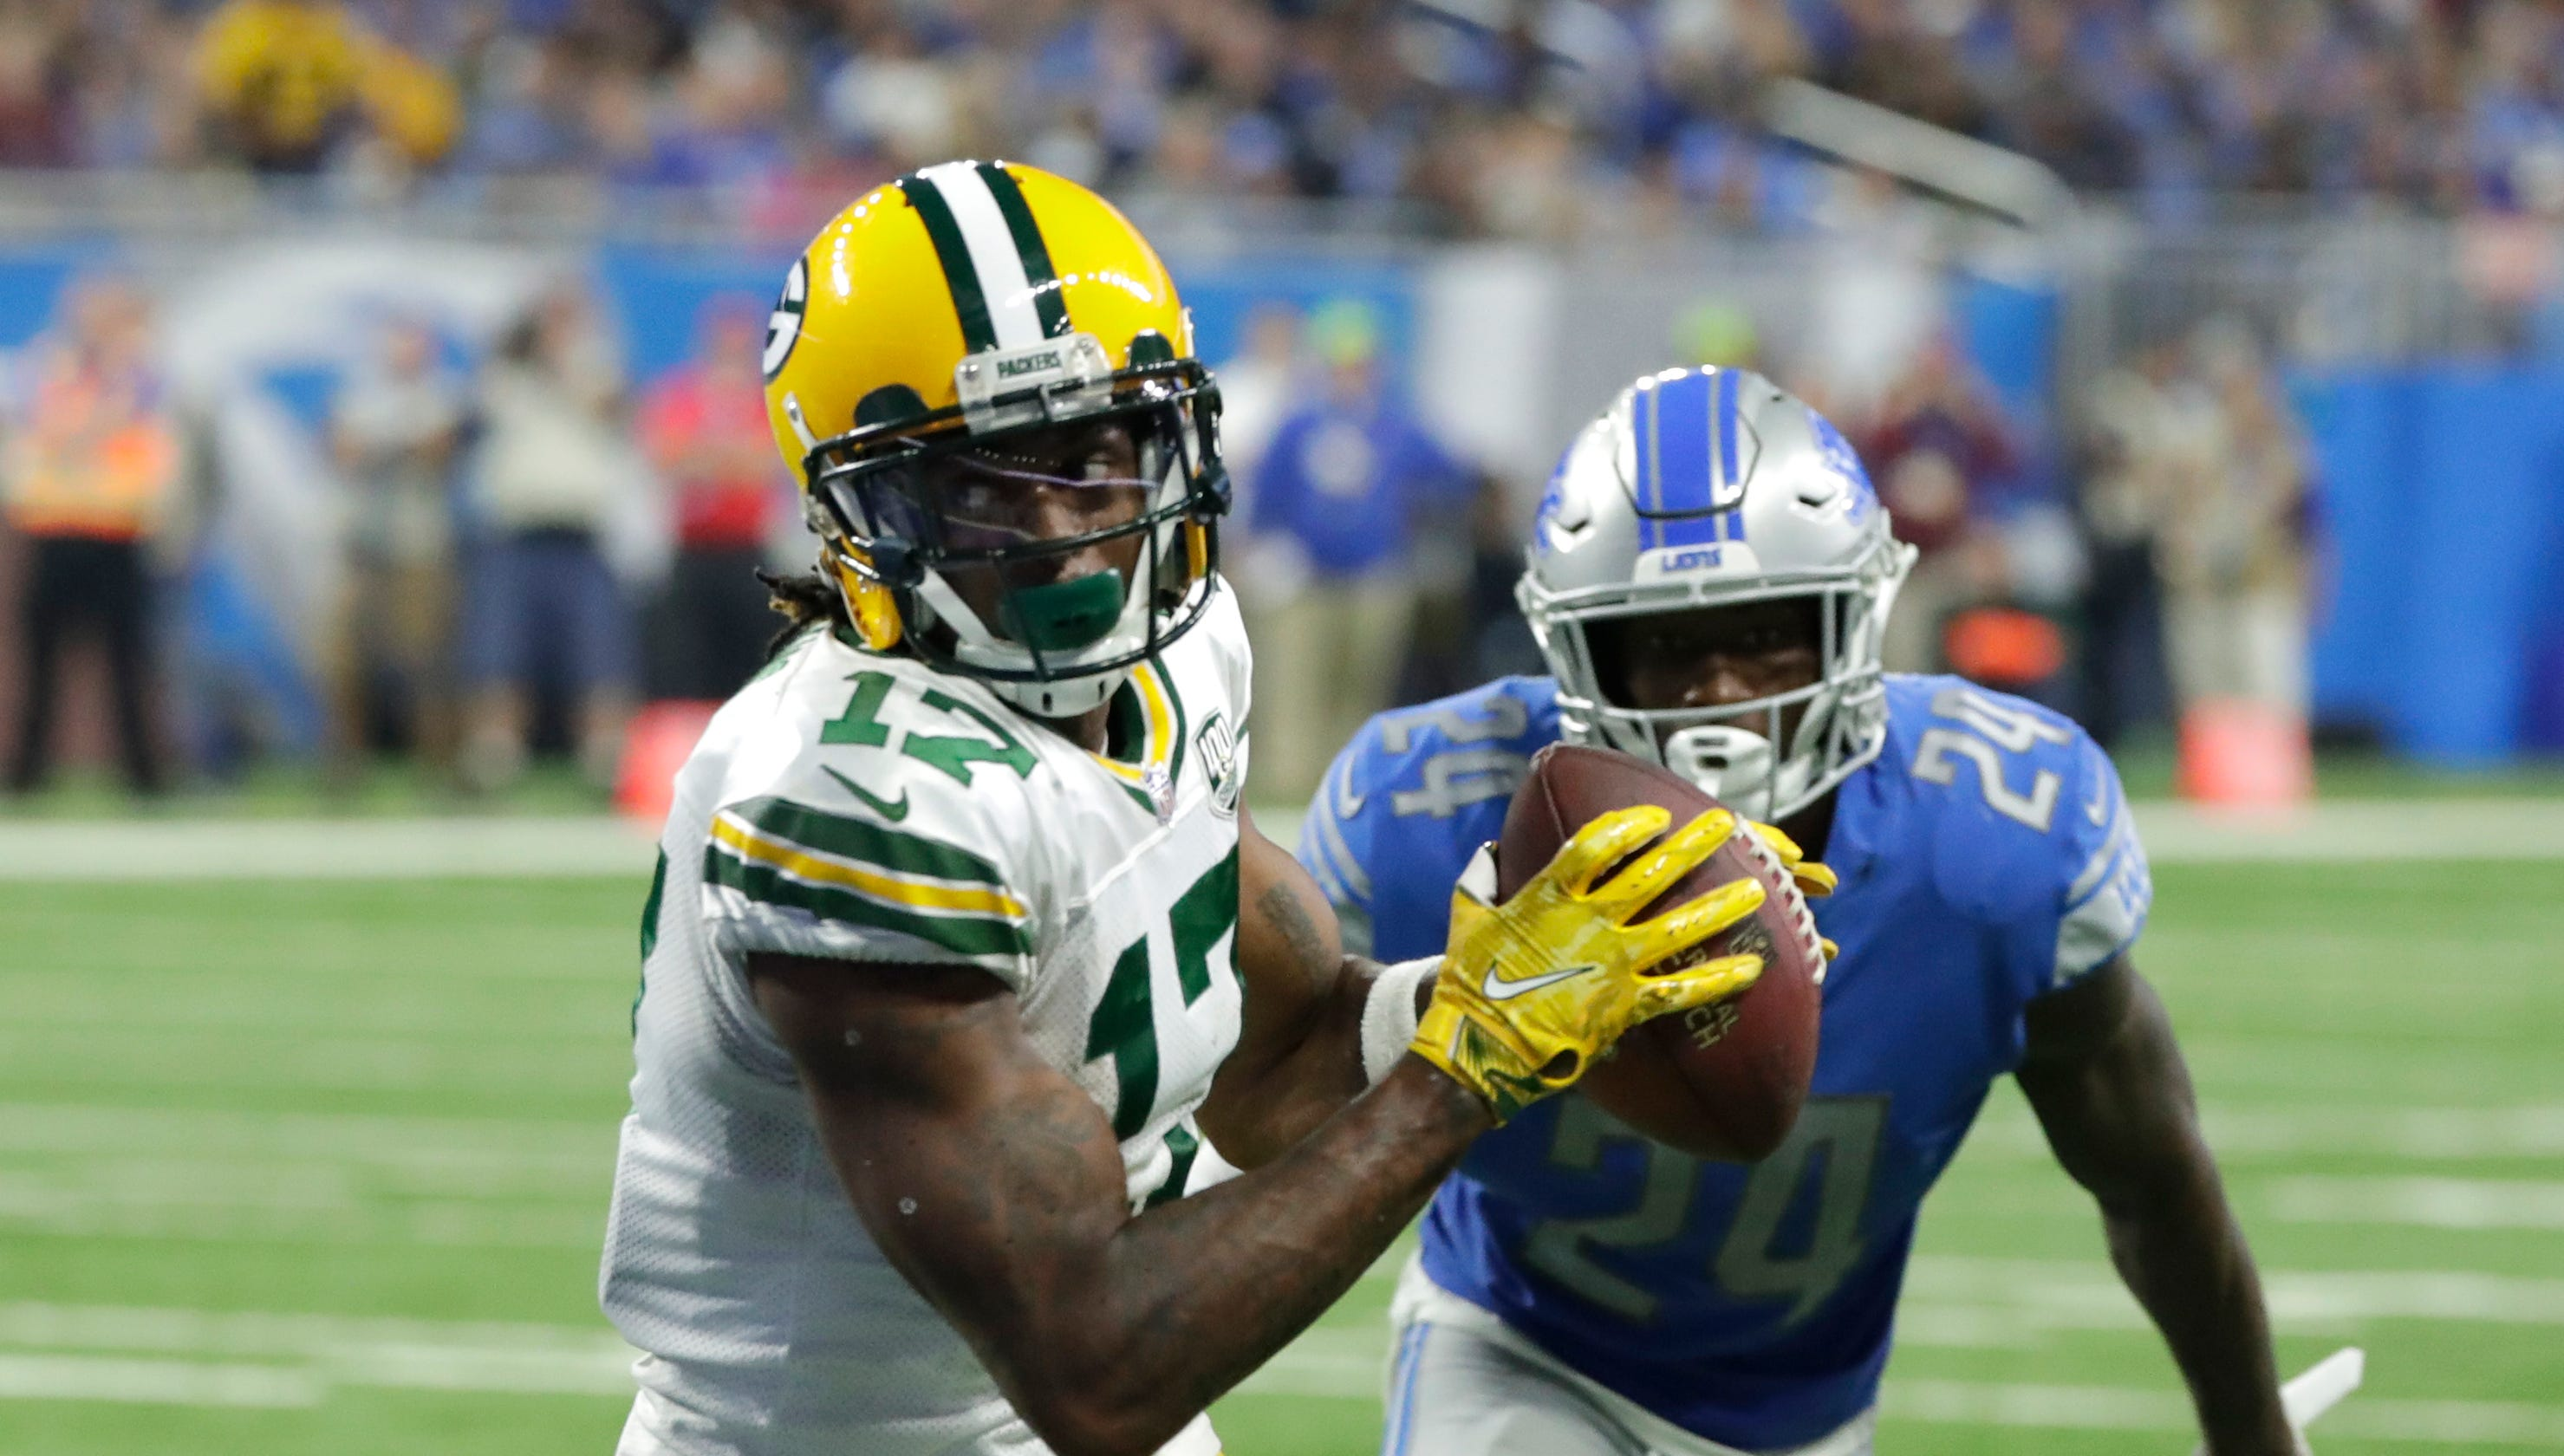 lions vs packers - photo #16